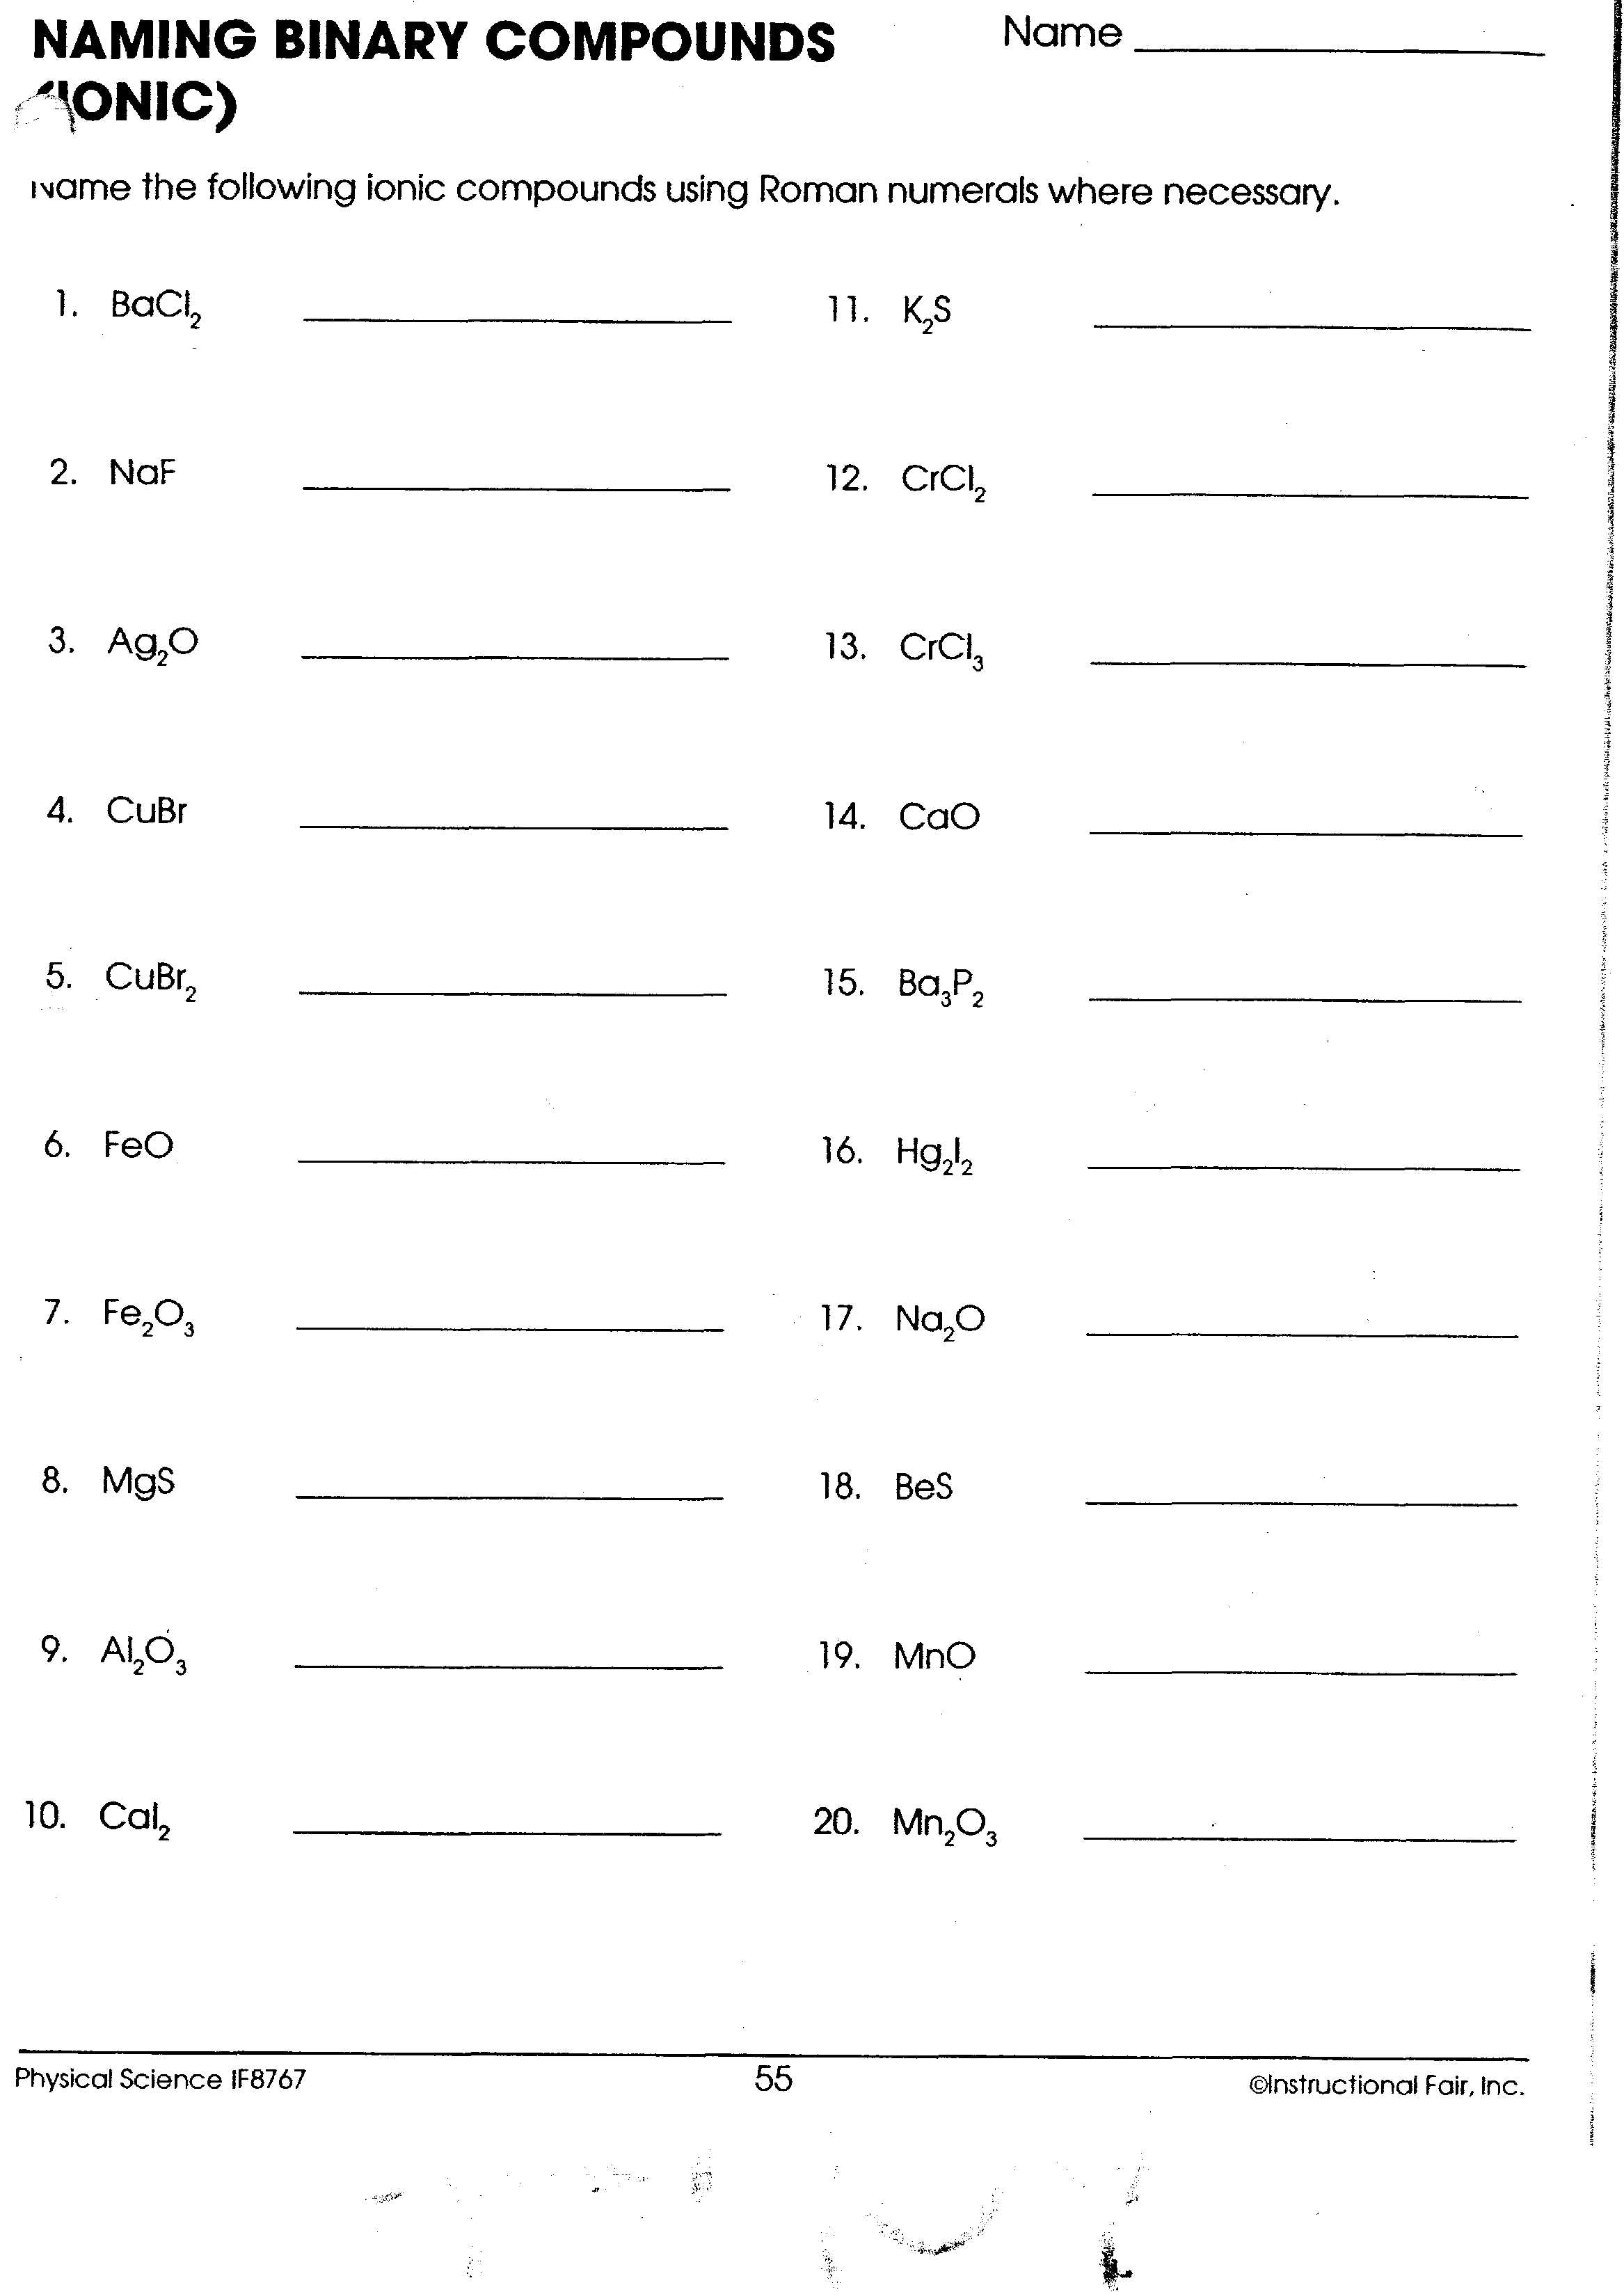 Naming Ionic Compounds Worksheet Answers | ABITLIKETHIS